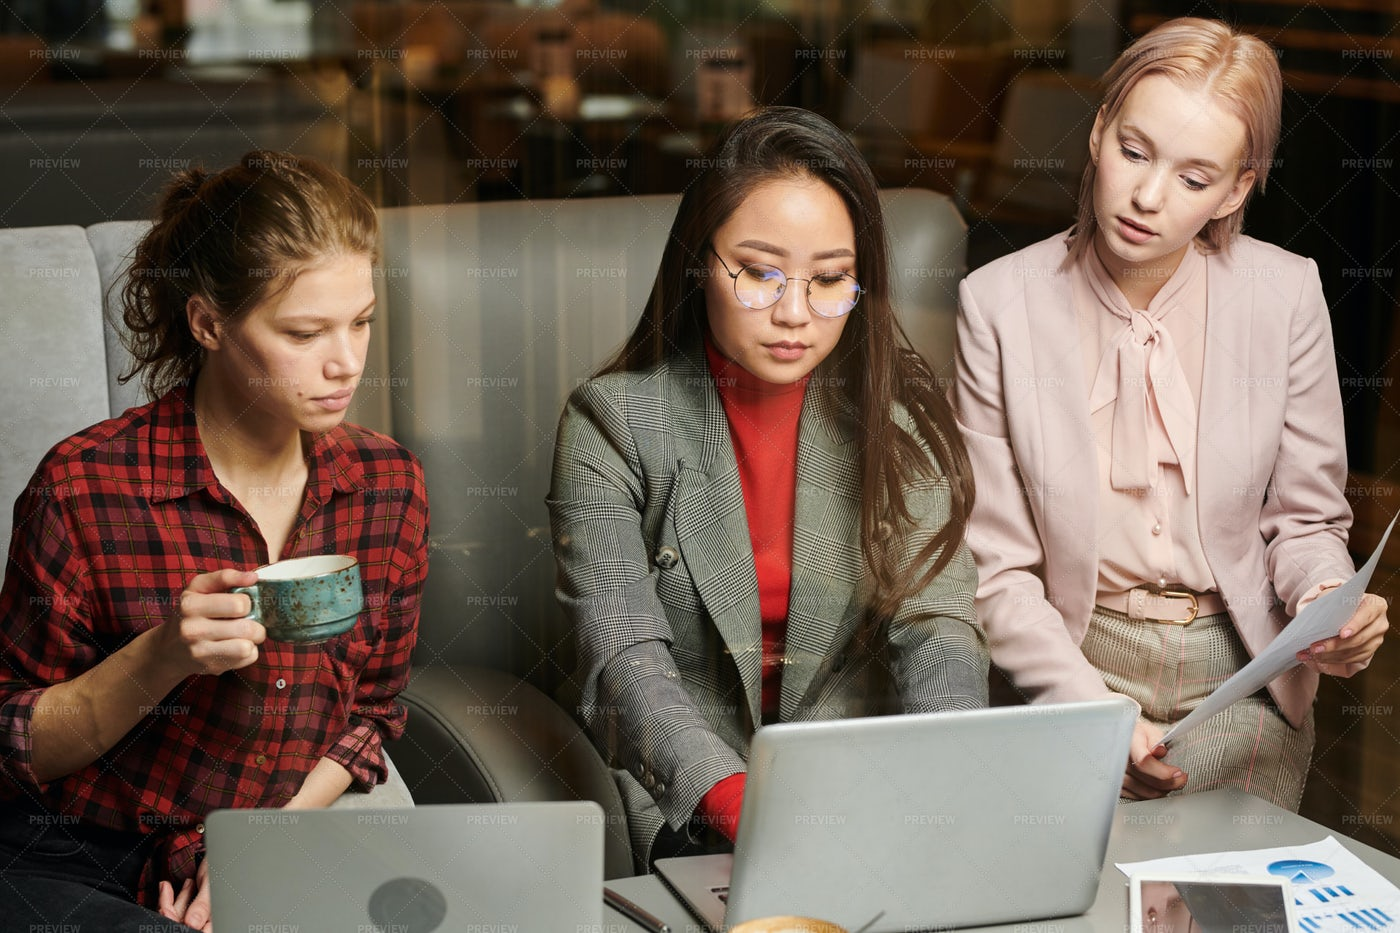 Women Working With Coursework: Stock Photos